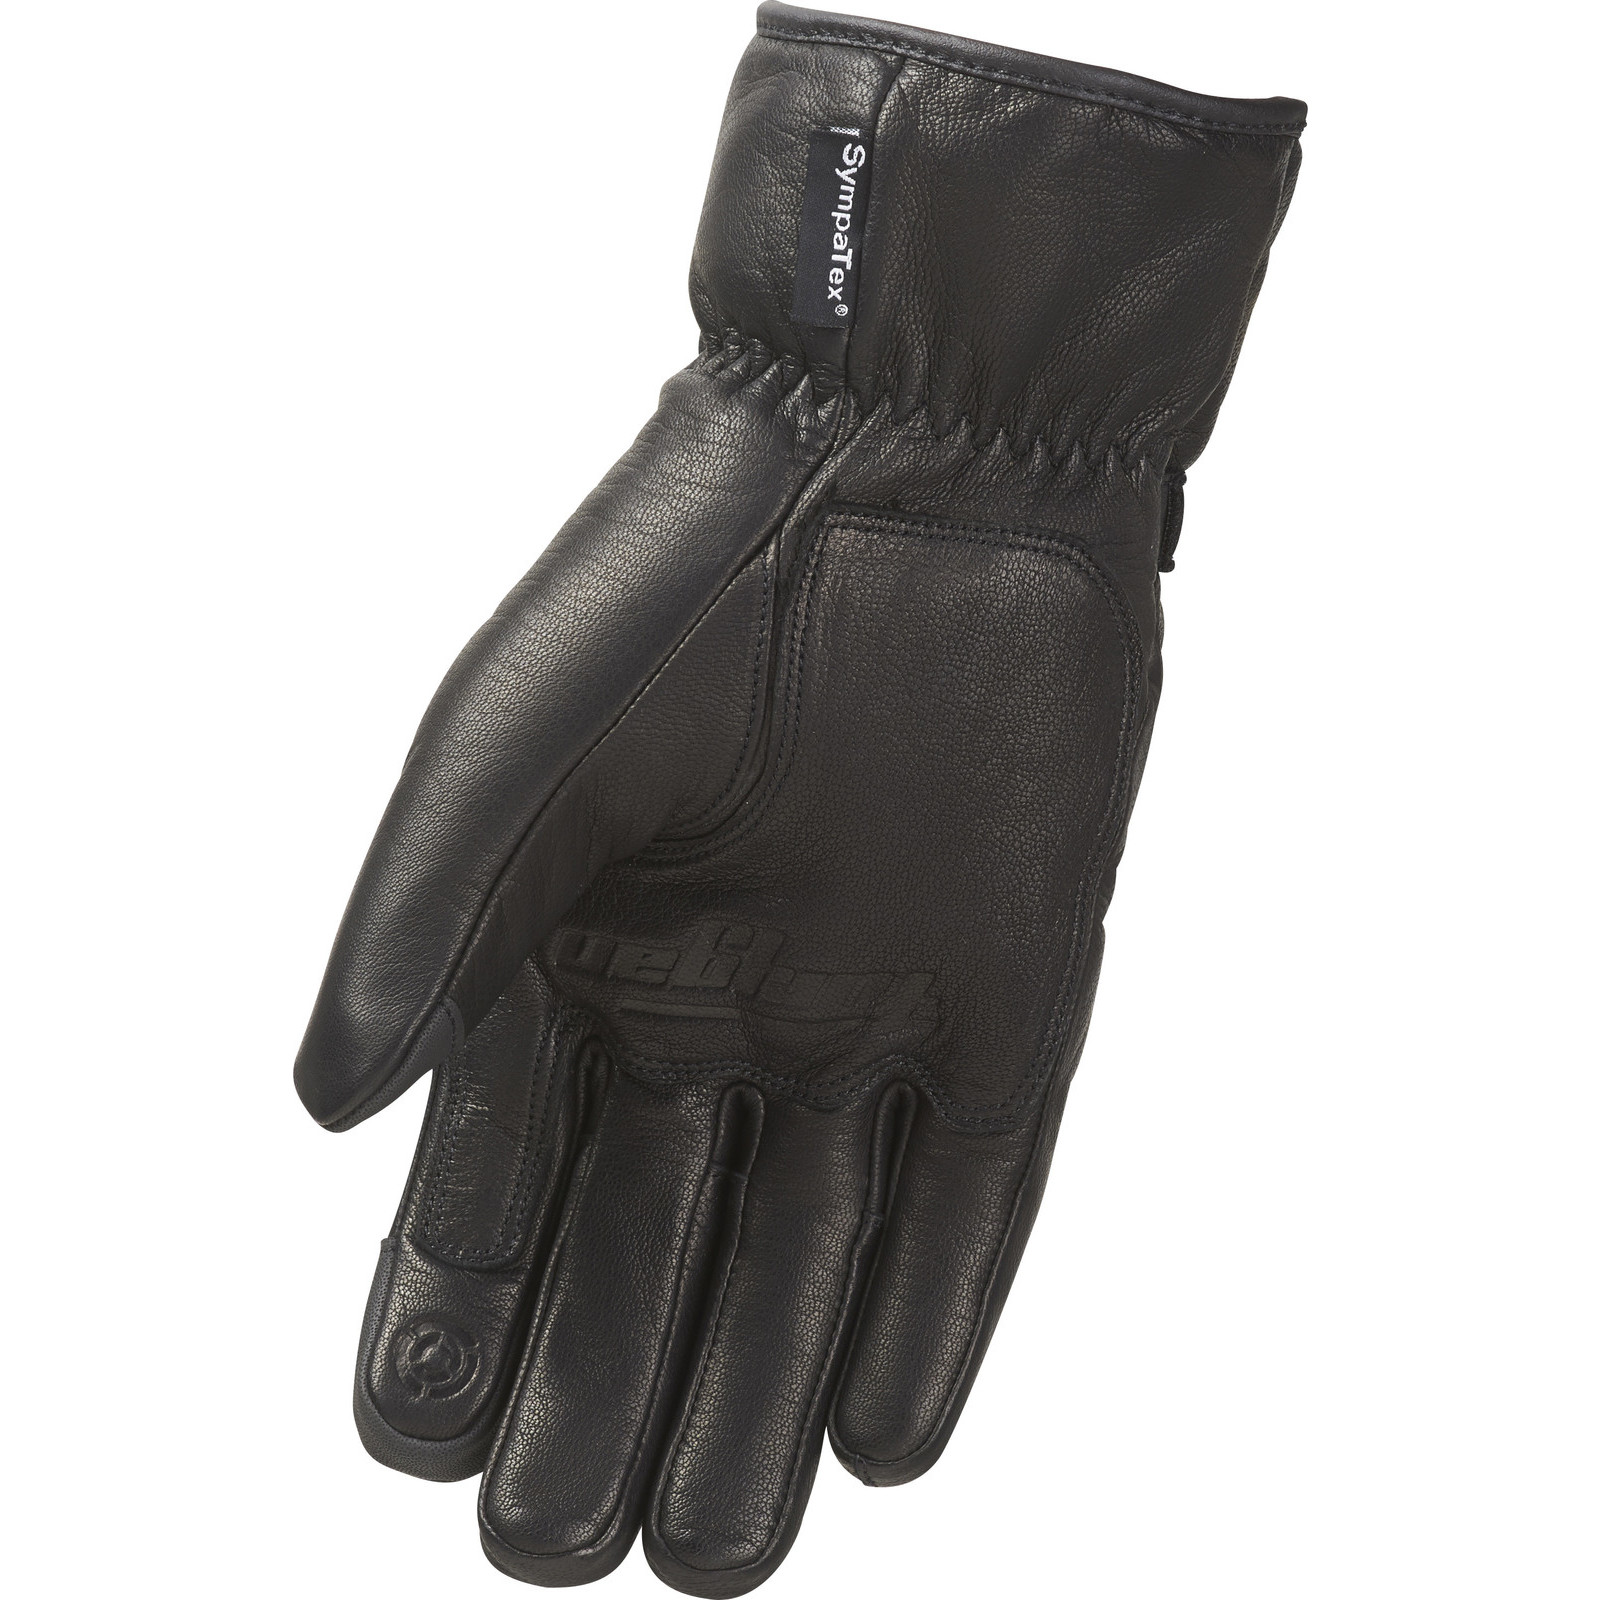 Motorcycle gloves thinsulate - Furygan Shiver Evo Sympatex Motorcycle Gloves Leather Waterproof